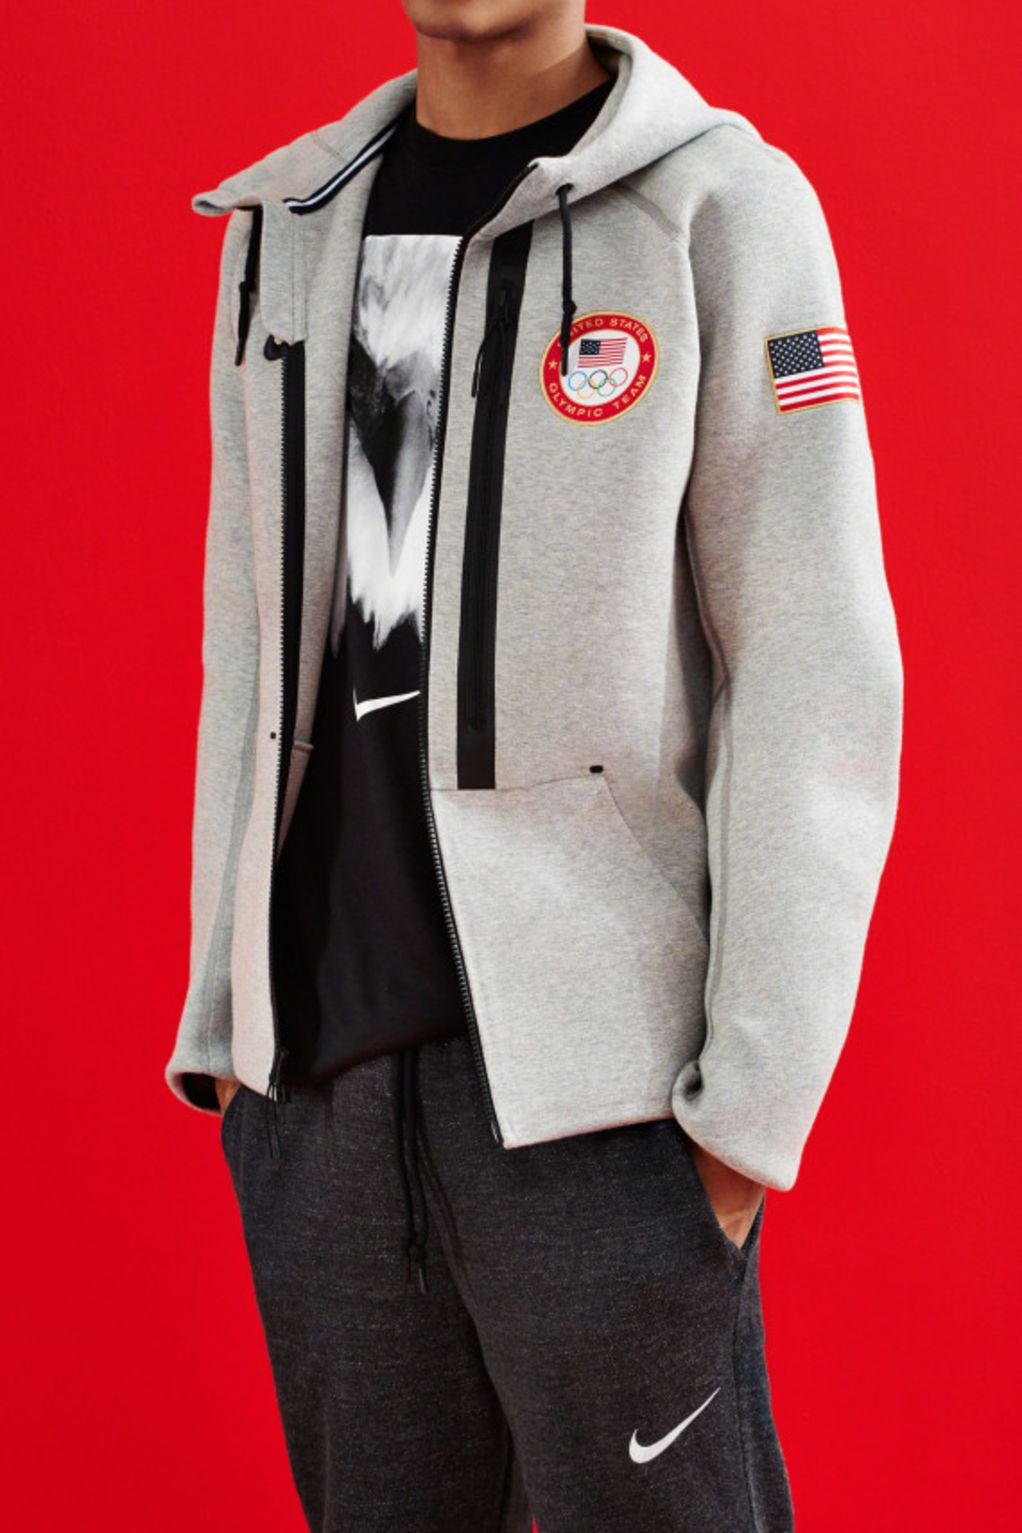 2020 Winter Olympic Teams.Nike 2014 Winter Olympics In Sochi Team Usa Collection